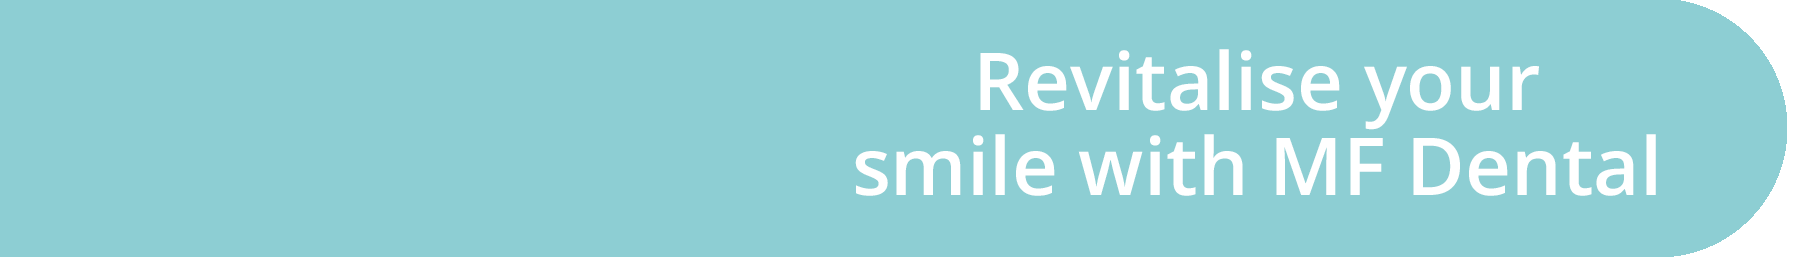 revitalise-your-smile-with-mf-dental